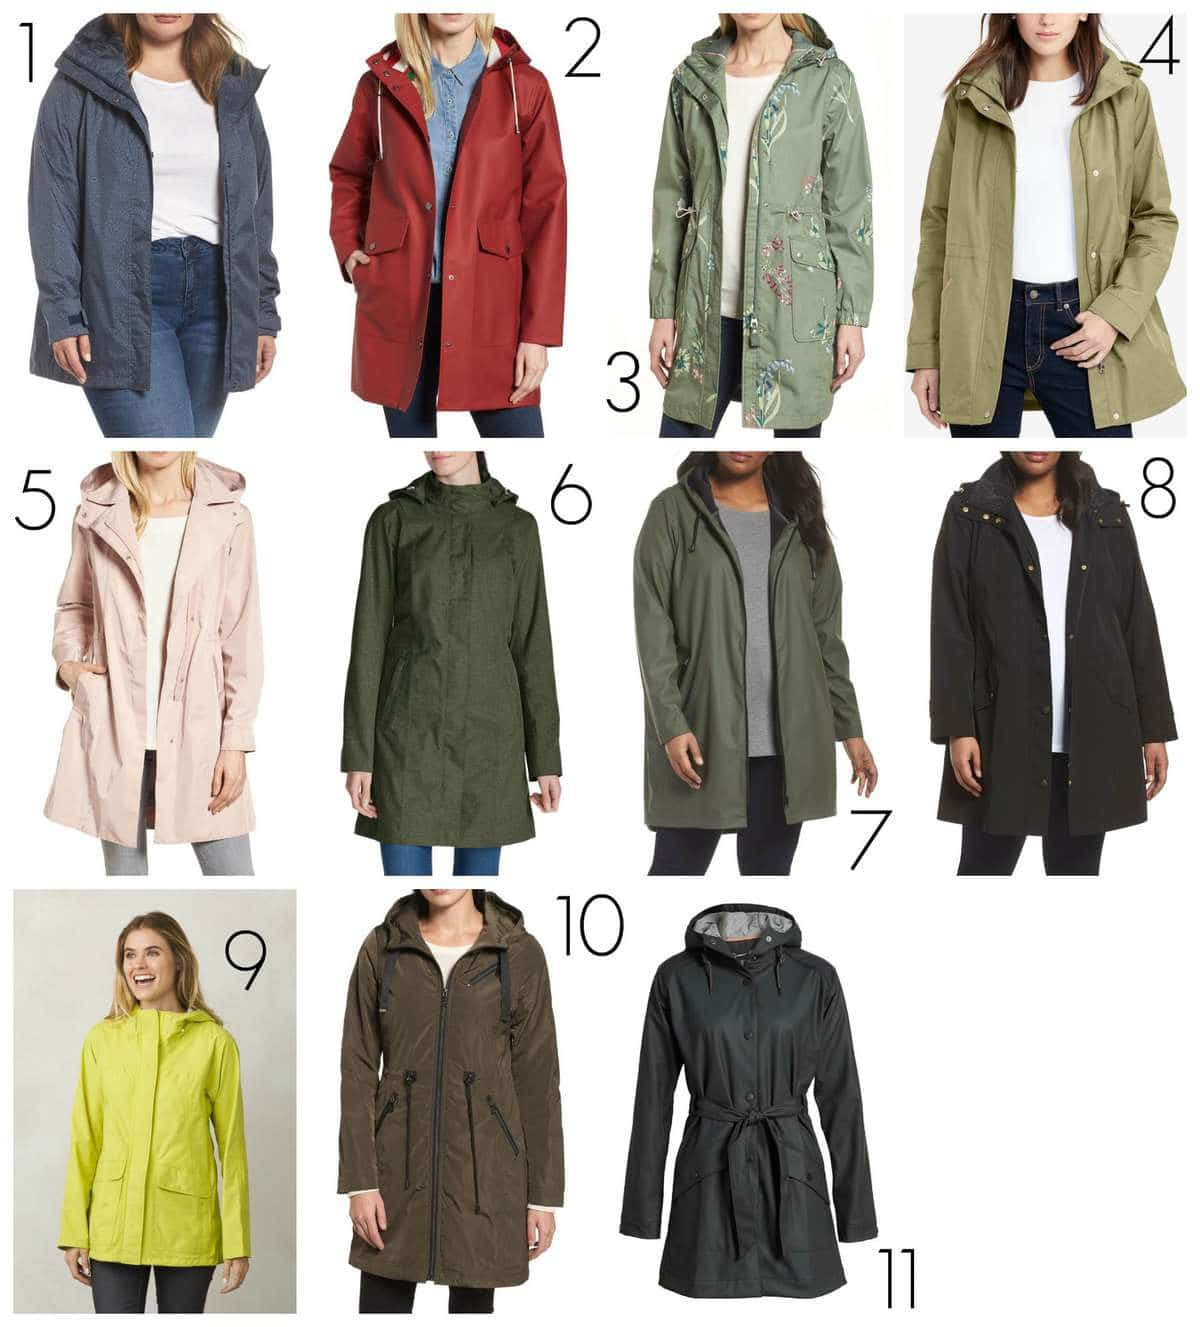 the best raincoats for women in regular and plus sizes